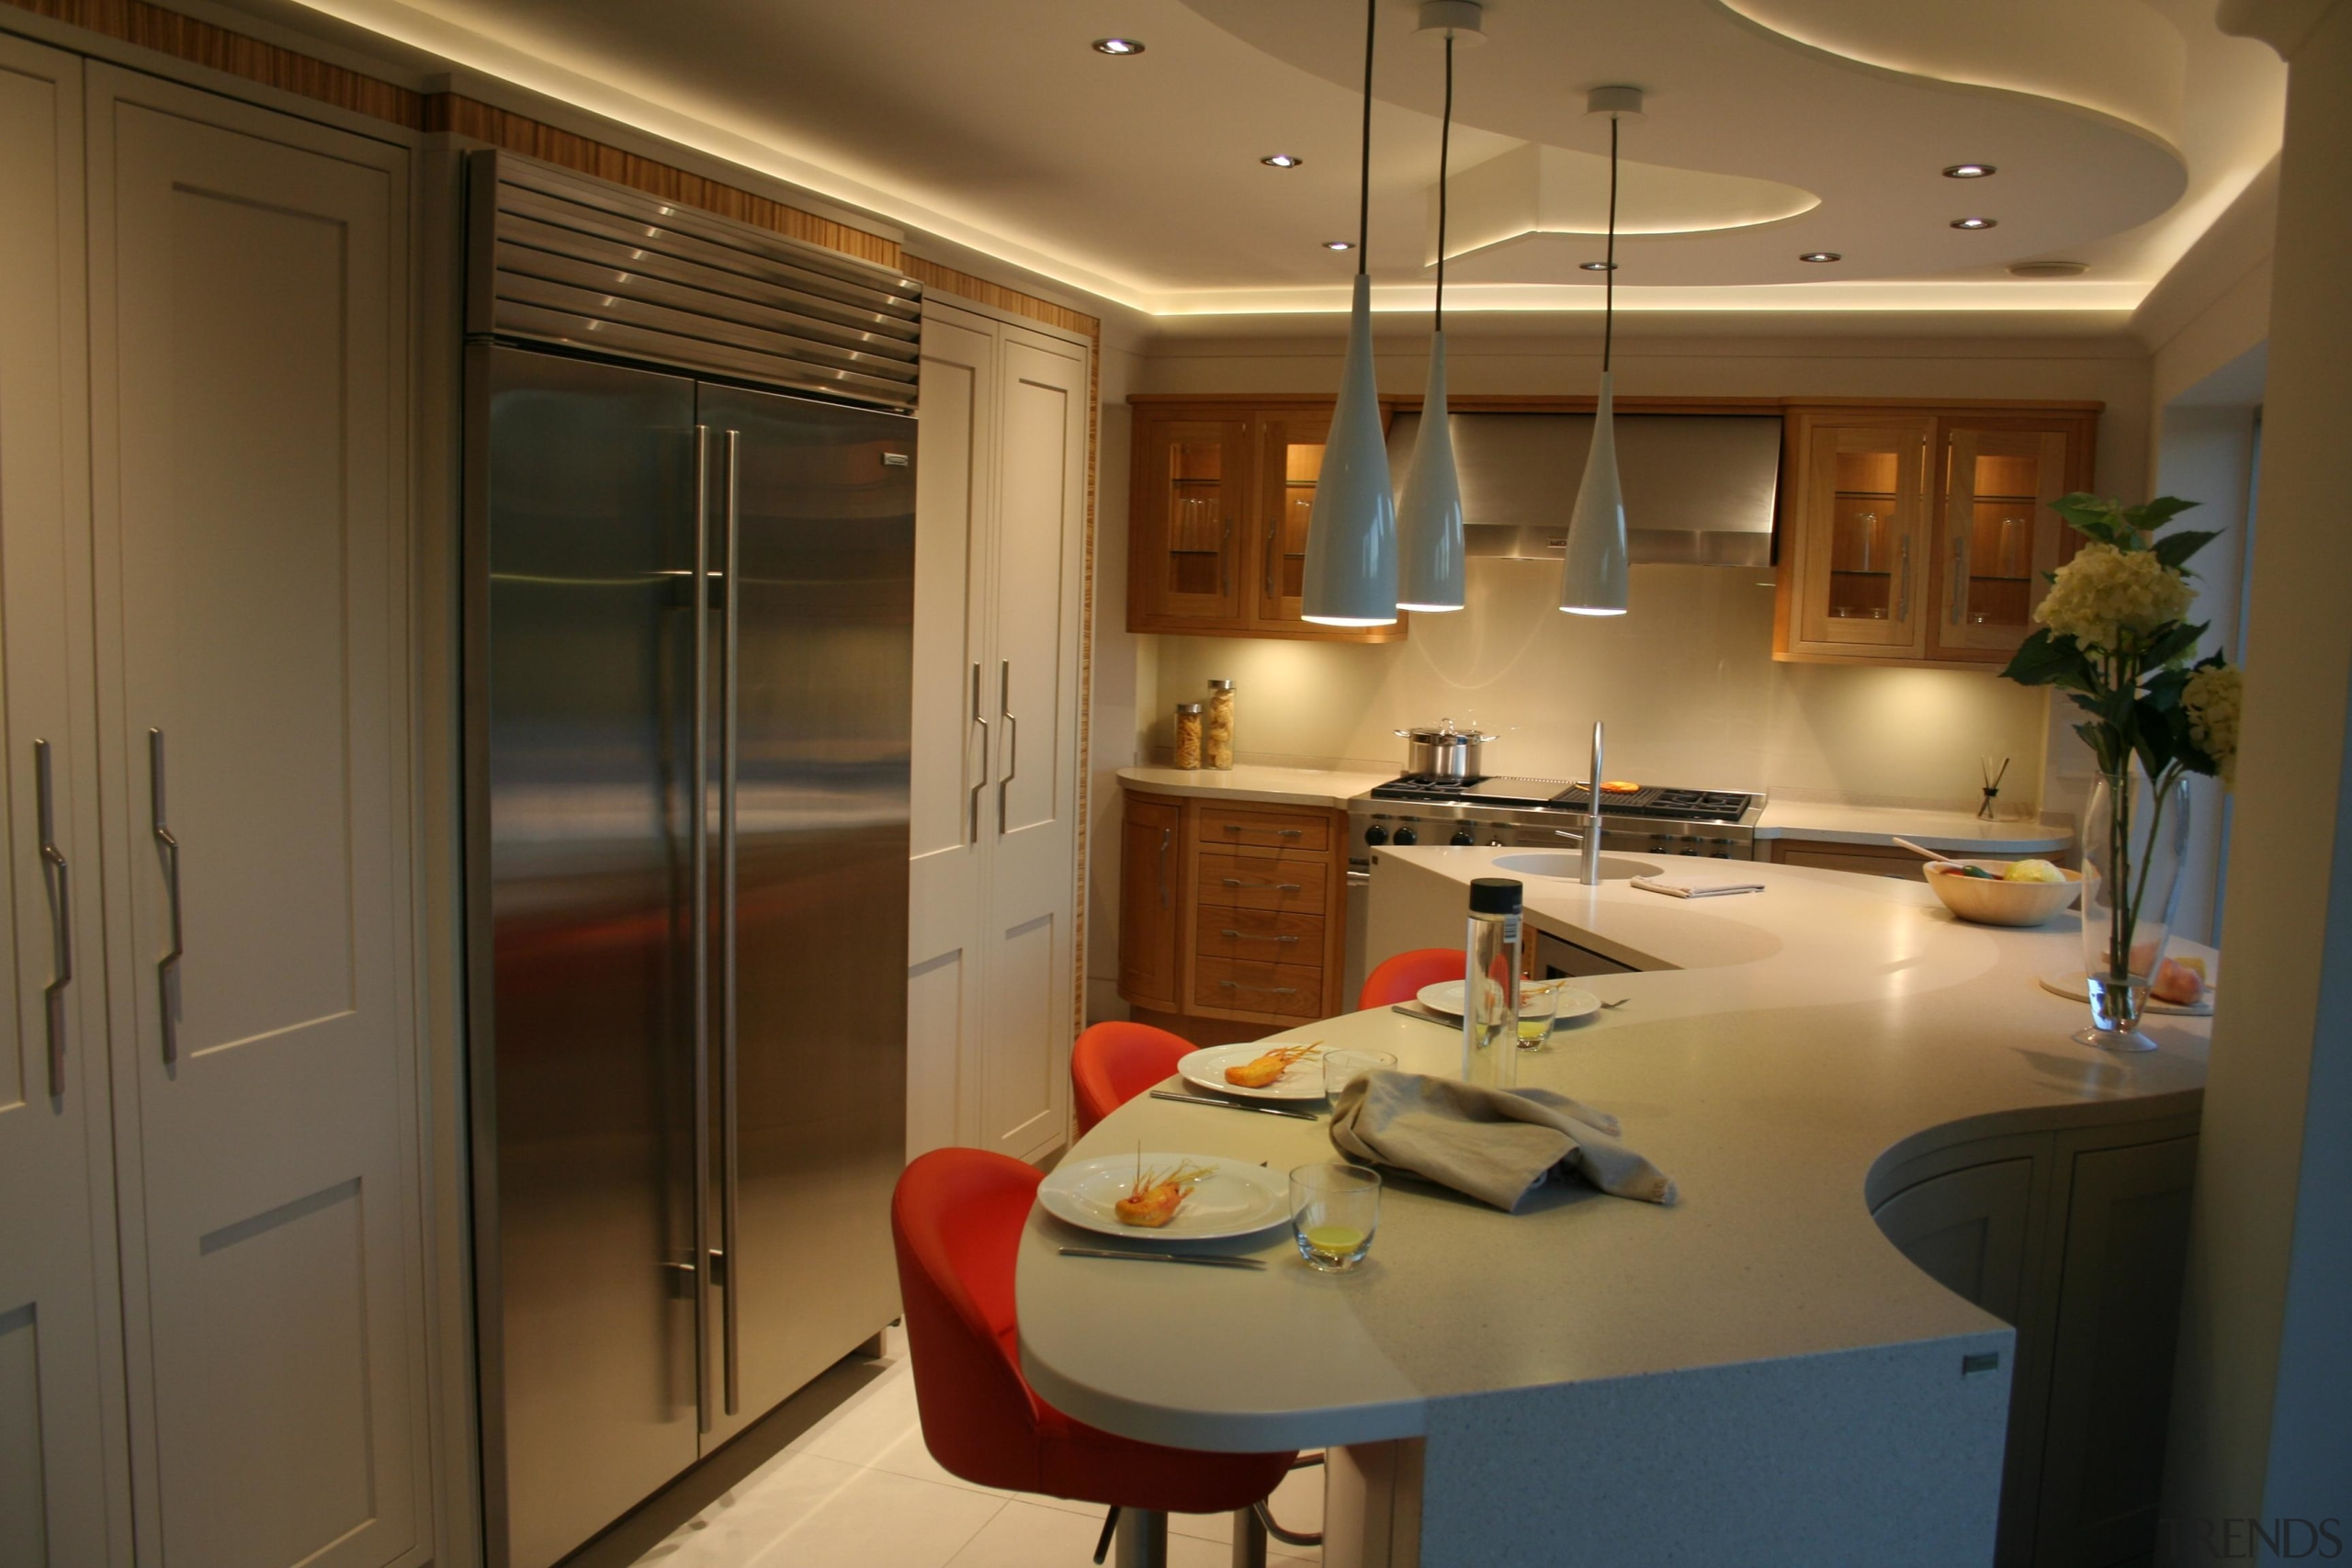 Recessed lighting, pendant lights and cabinet lighting really cabinetry, countertop, interior design, kitchen, room, brown